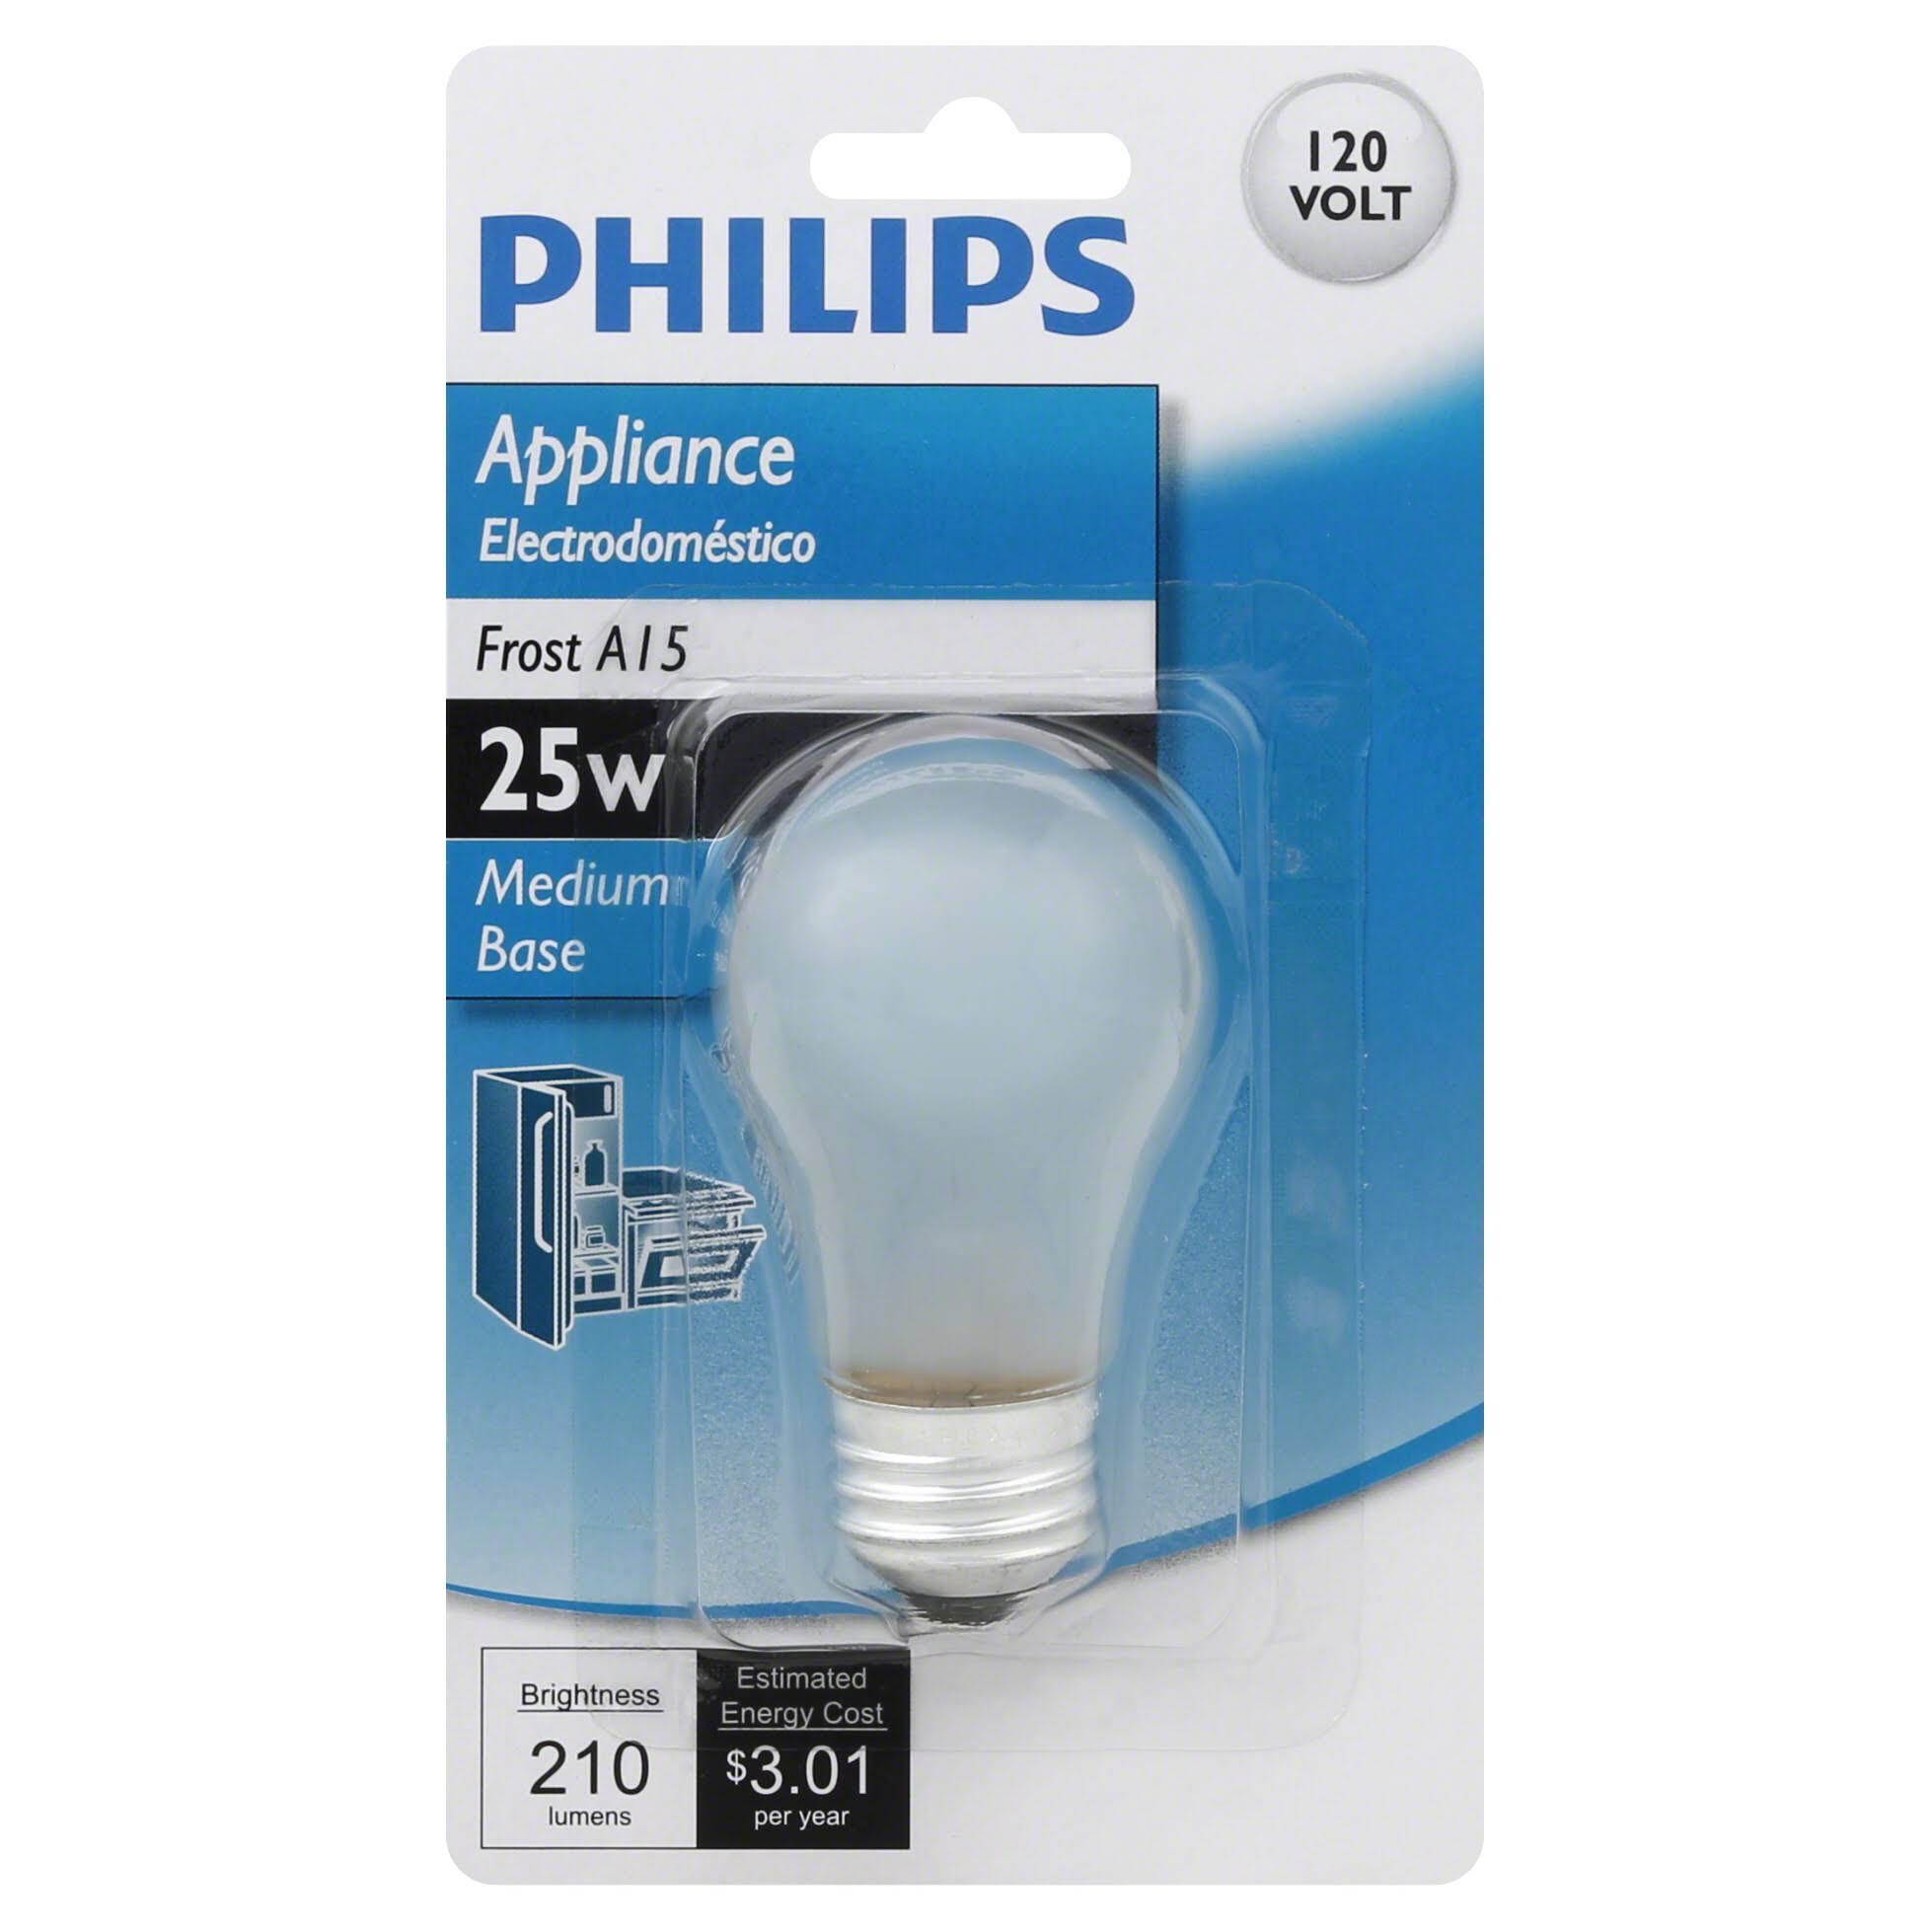 Philips A15 Appliance Light Bulb - Frosted, 25W